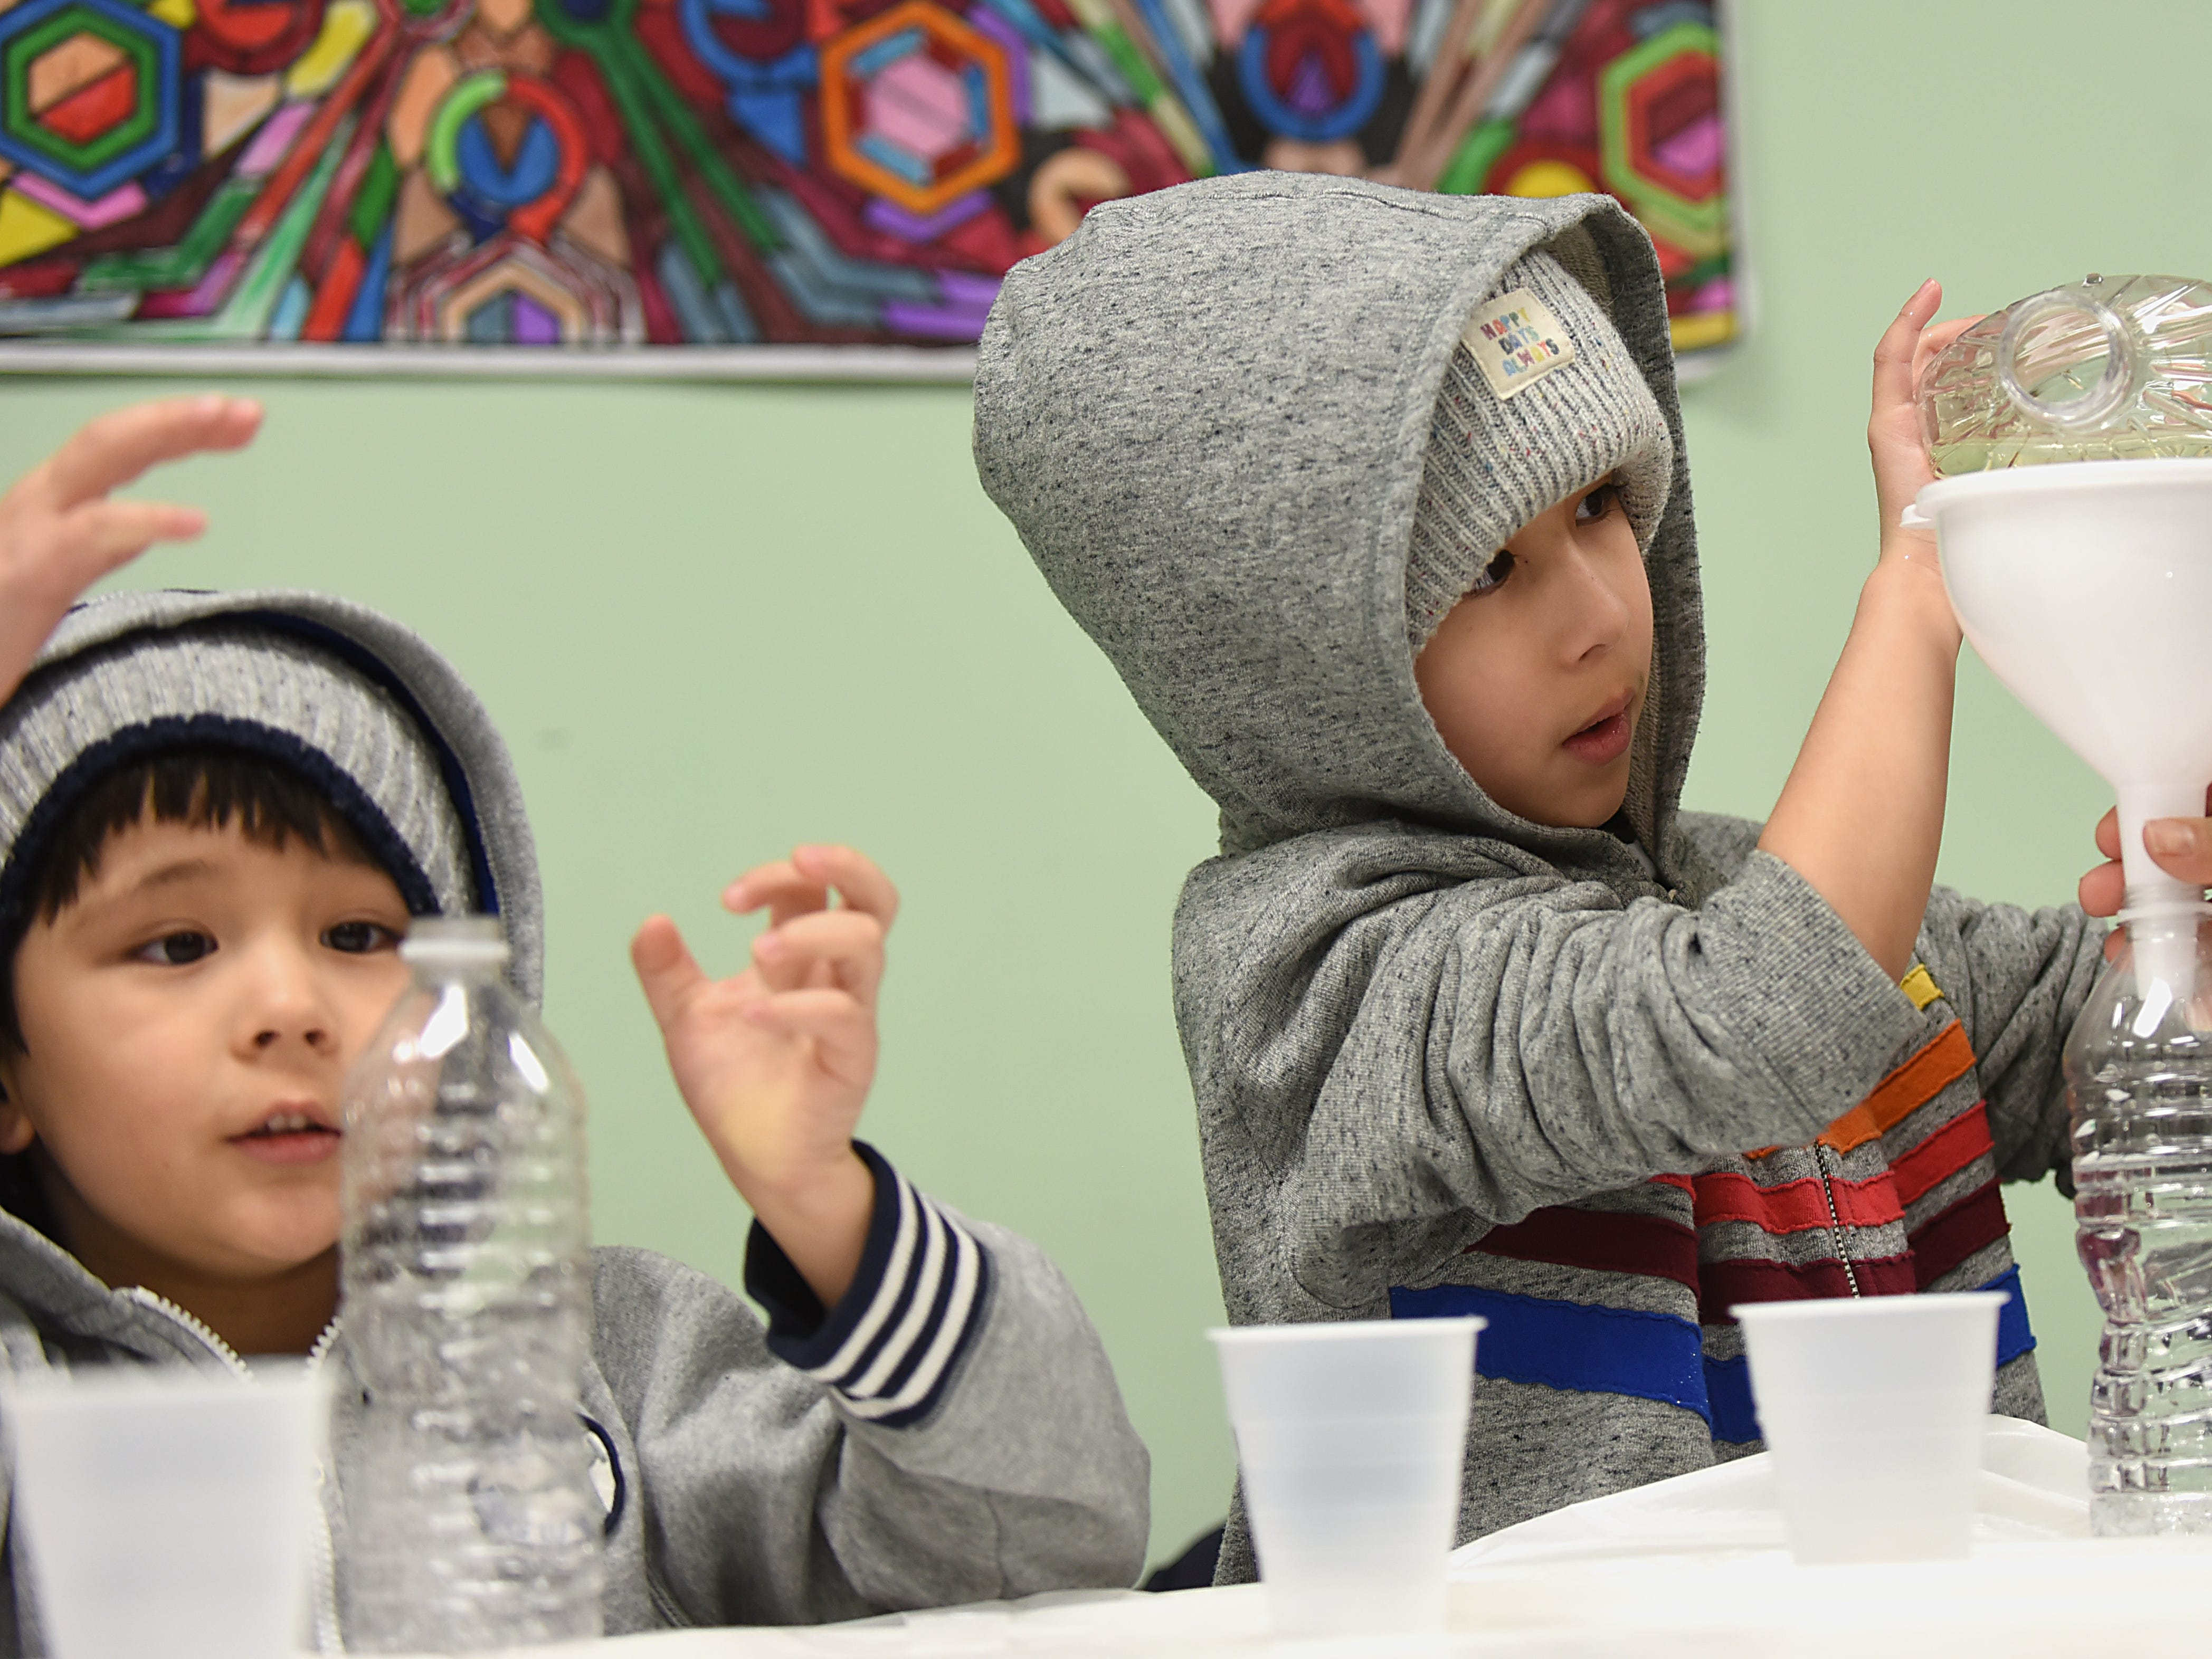 Children make a snowstorm in a bottle as part of the STEM Saturday series at East Rutherford Memorial Library on Saturday January 12, 2019. Alexander Green, 4 and Anthony Green, 6 concentrate as they make their snowstorms.